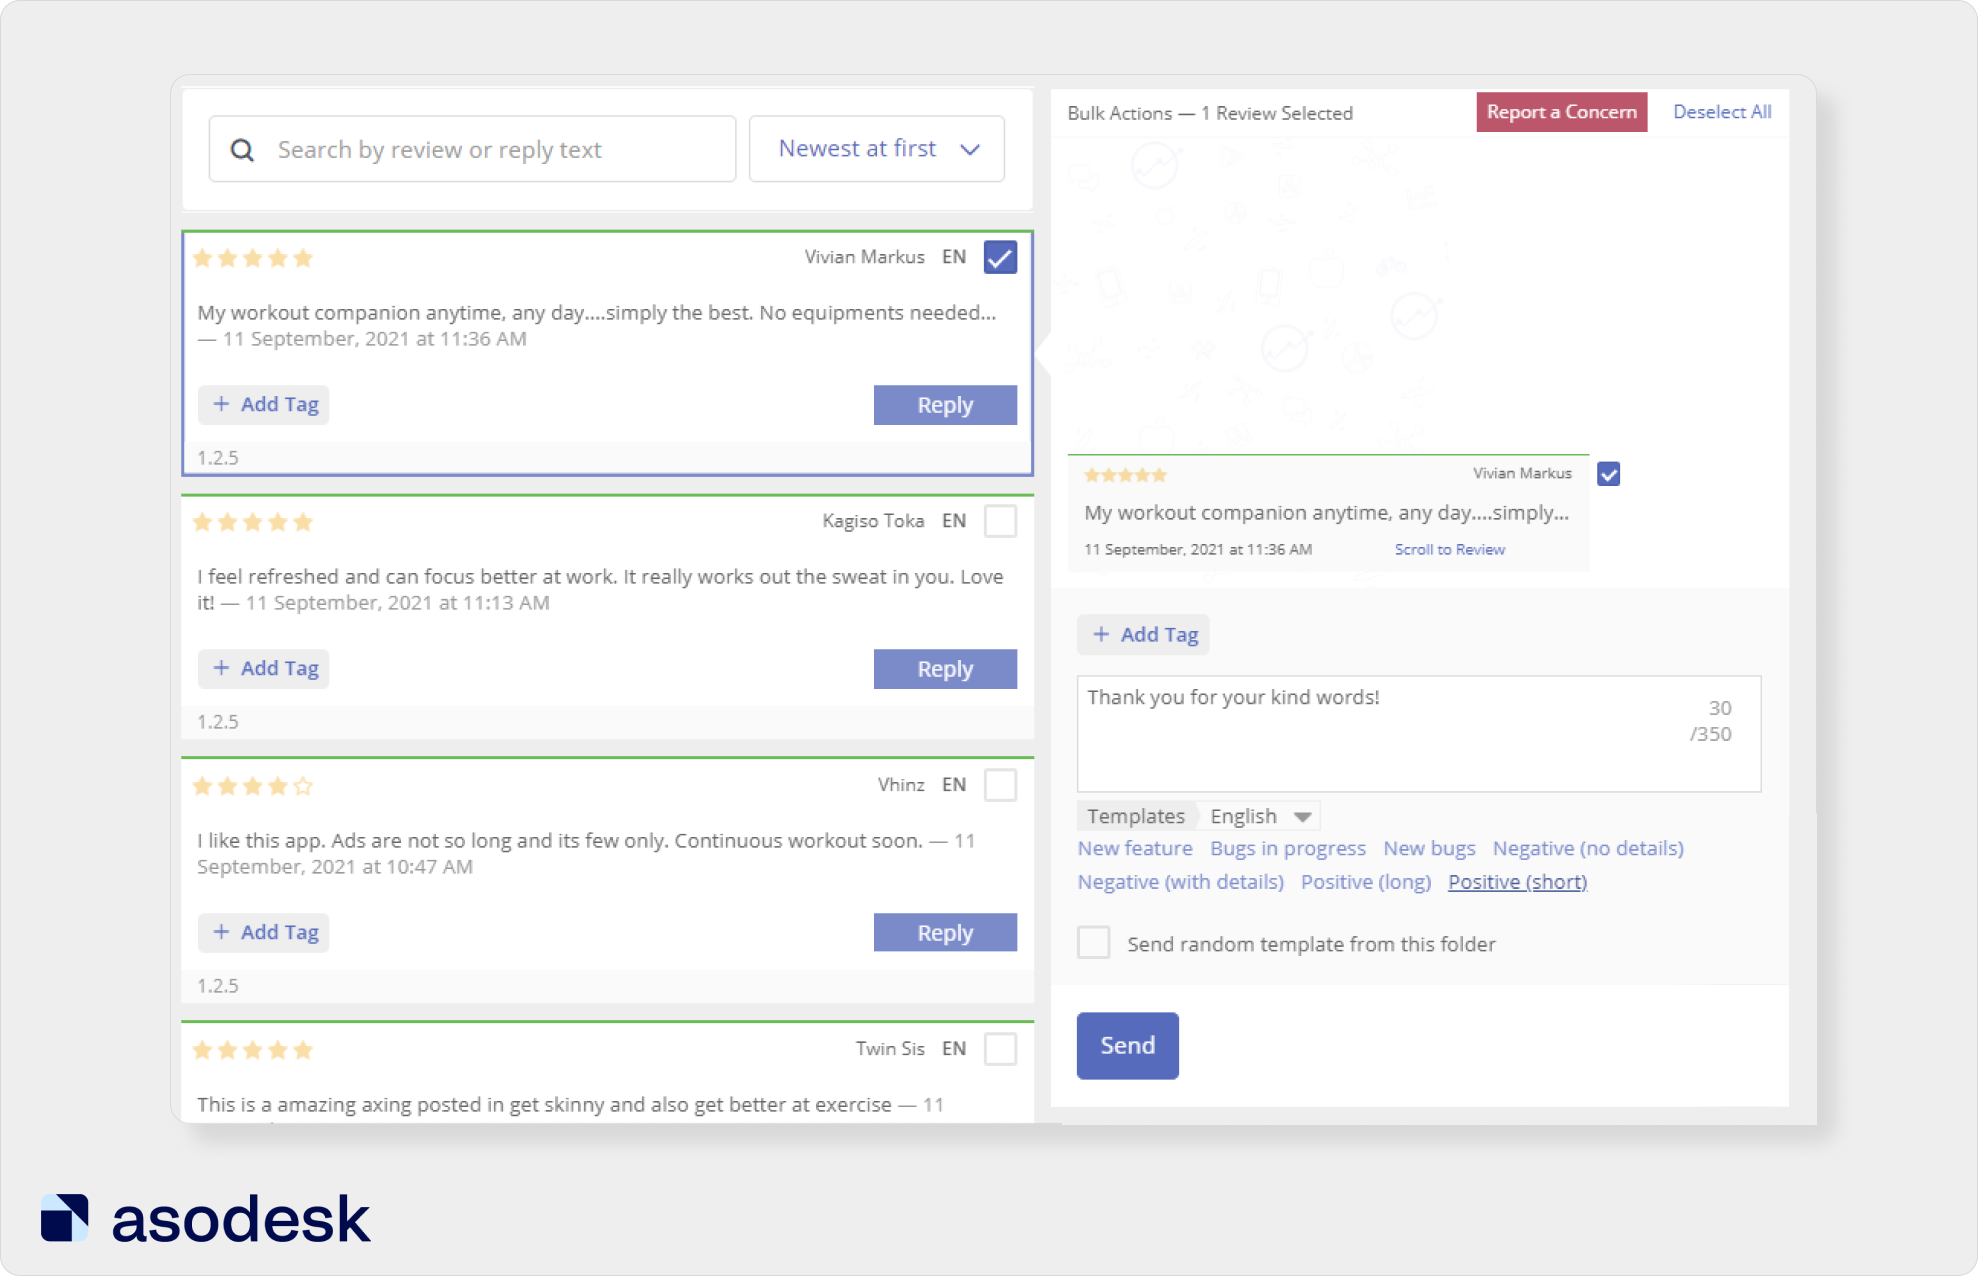 You can reply to a review using a template in Asodesk